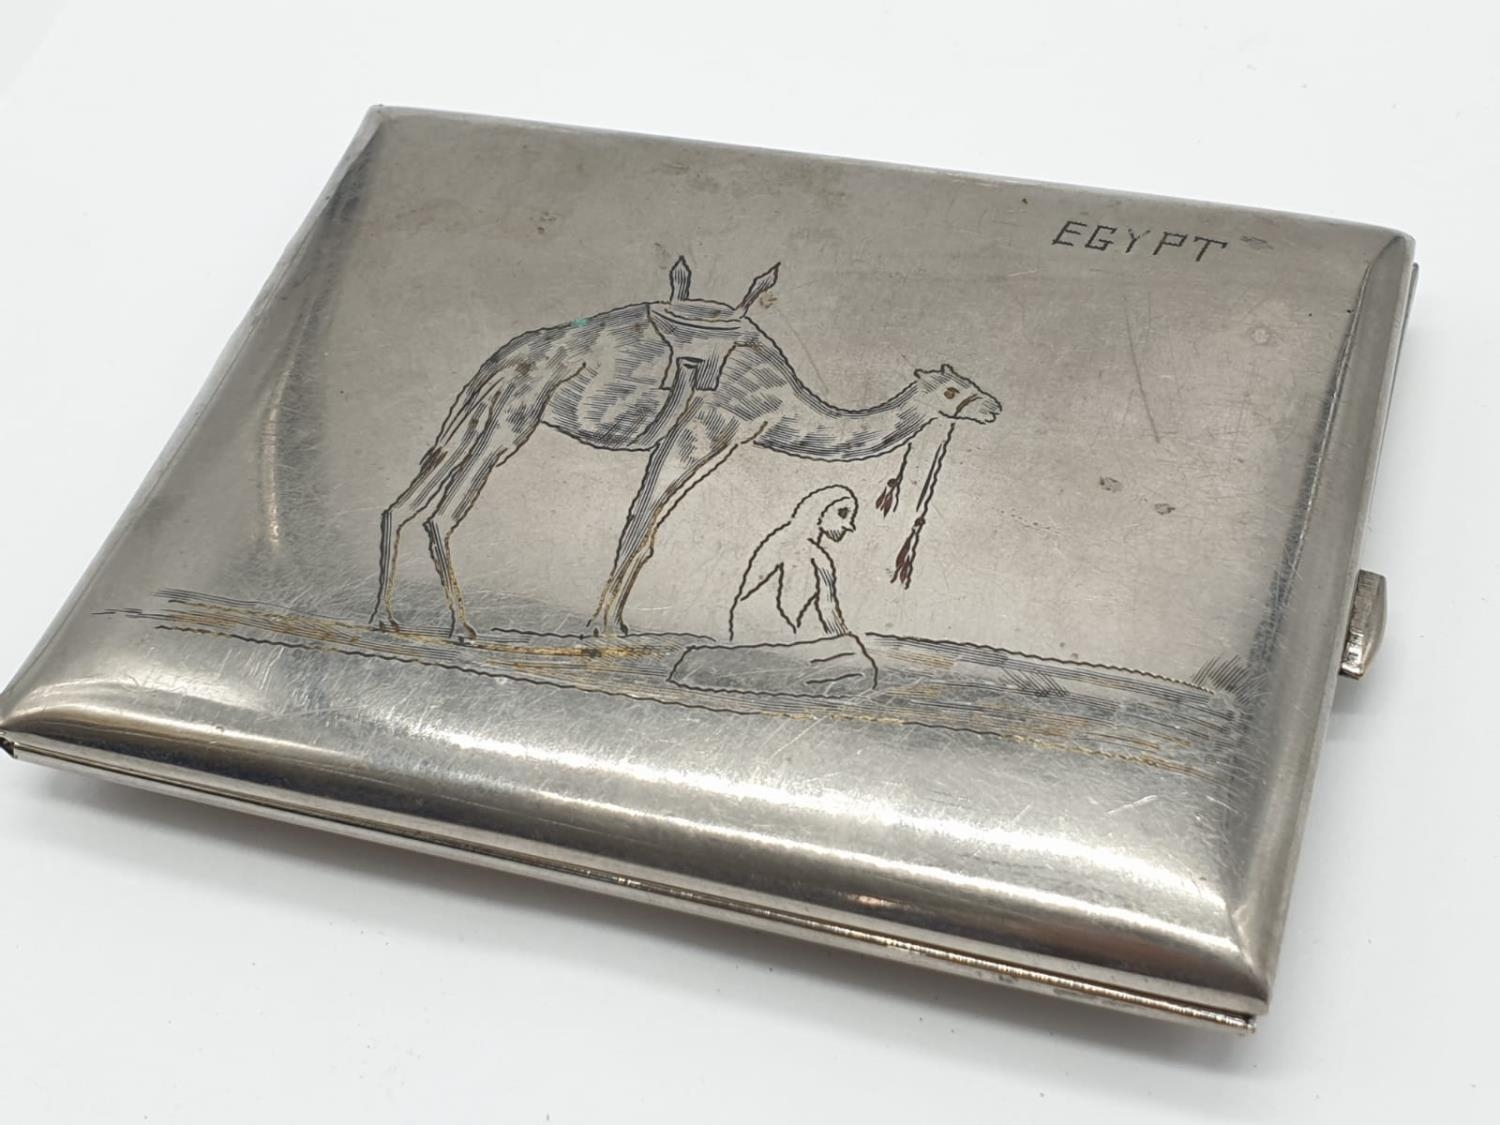 WW2 Period Cigarette Case. Hand engraved ?Egypt? and a Long Range Desert Group shoulder title - Image 2 of 4